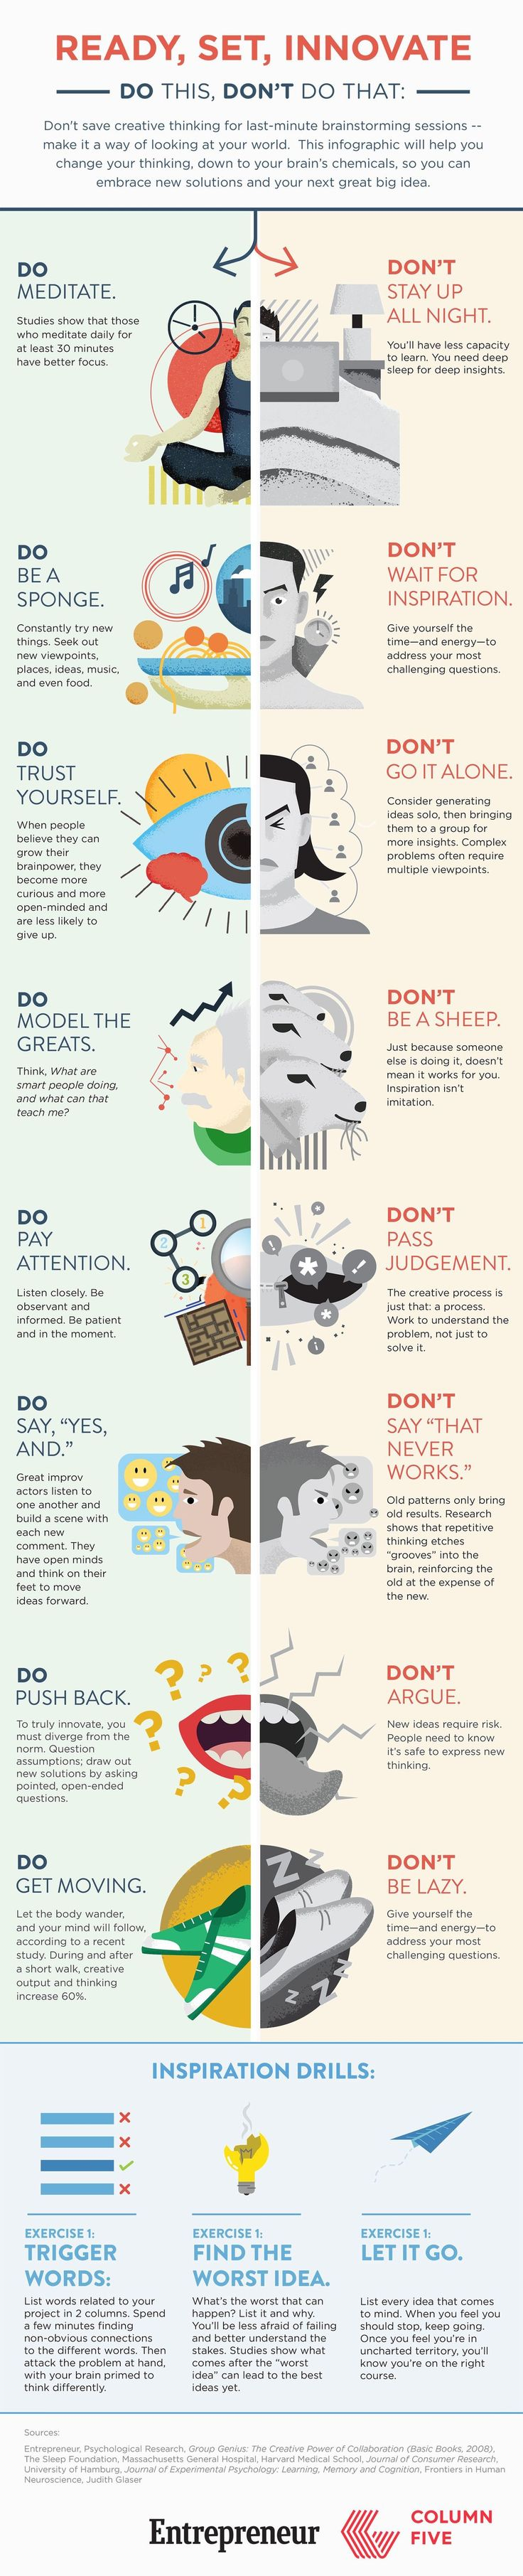 Ready, set, innovate. Dos and don'ts to foster creativity and over all success